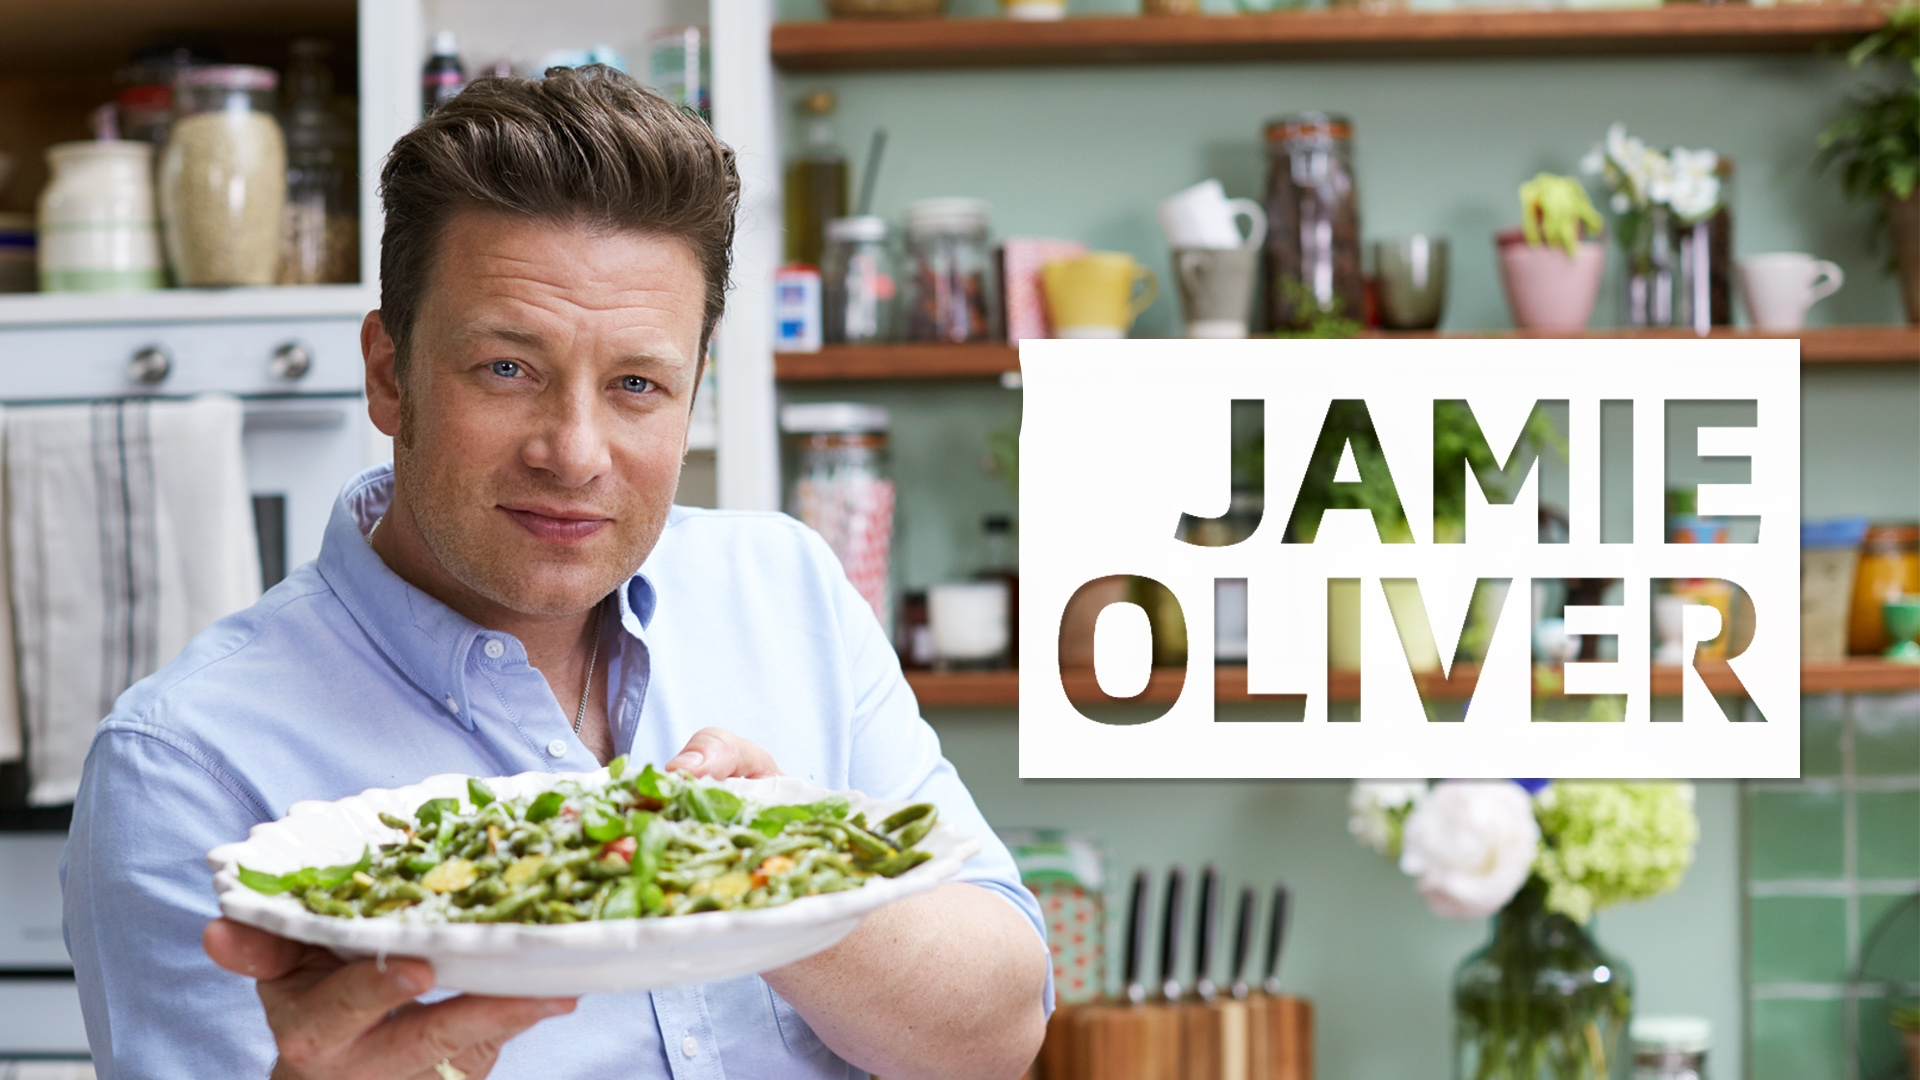 Jamie Oliver 15 Minuten Küche Video Jamie Oliver Tv Play Srf